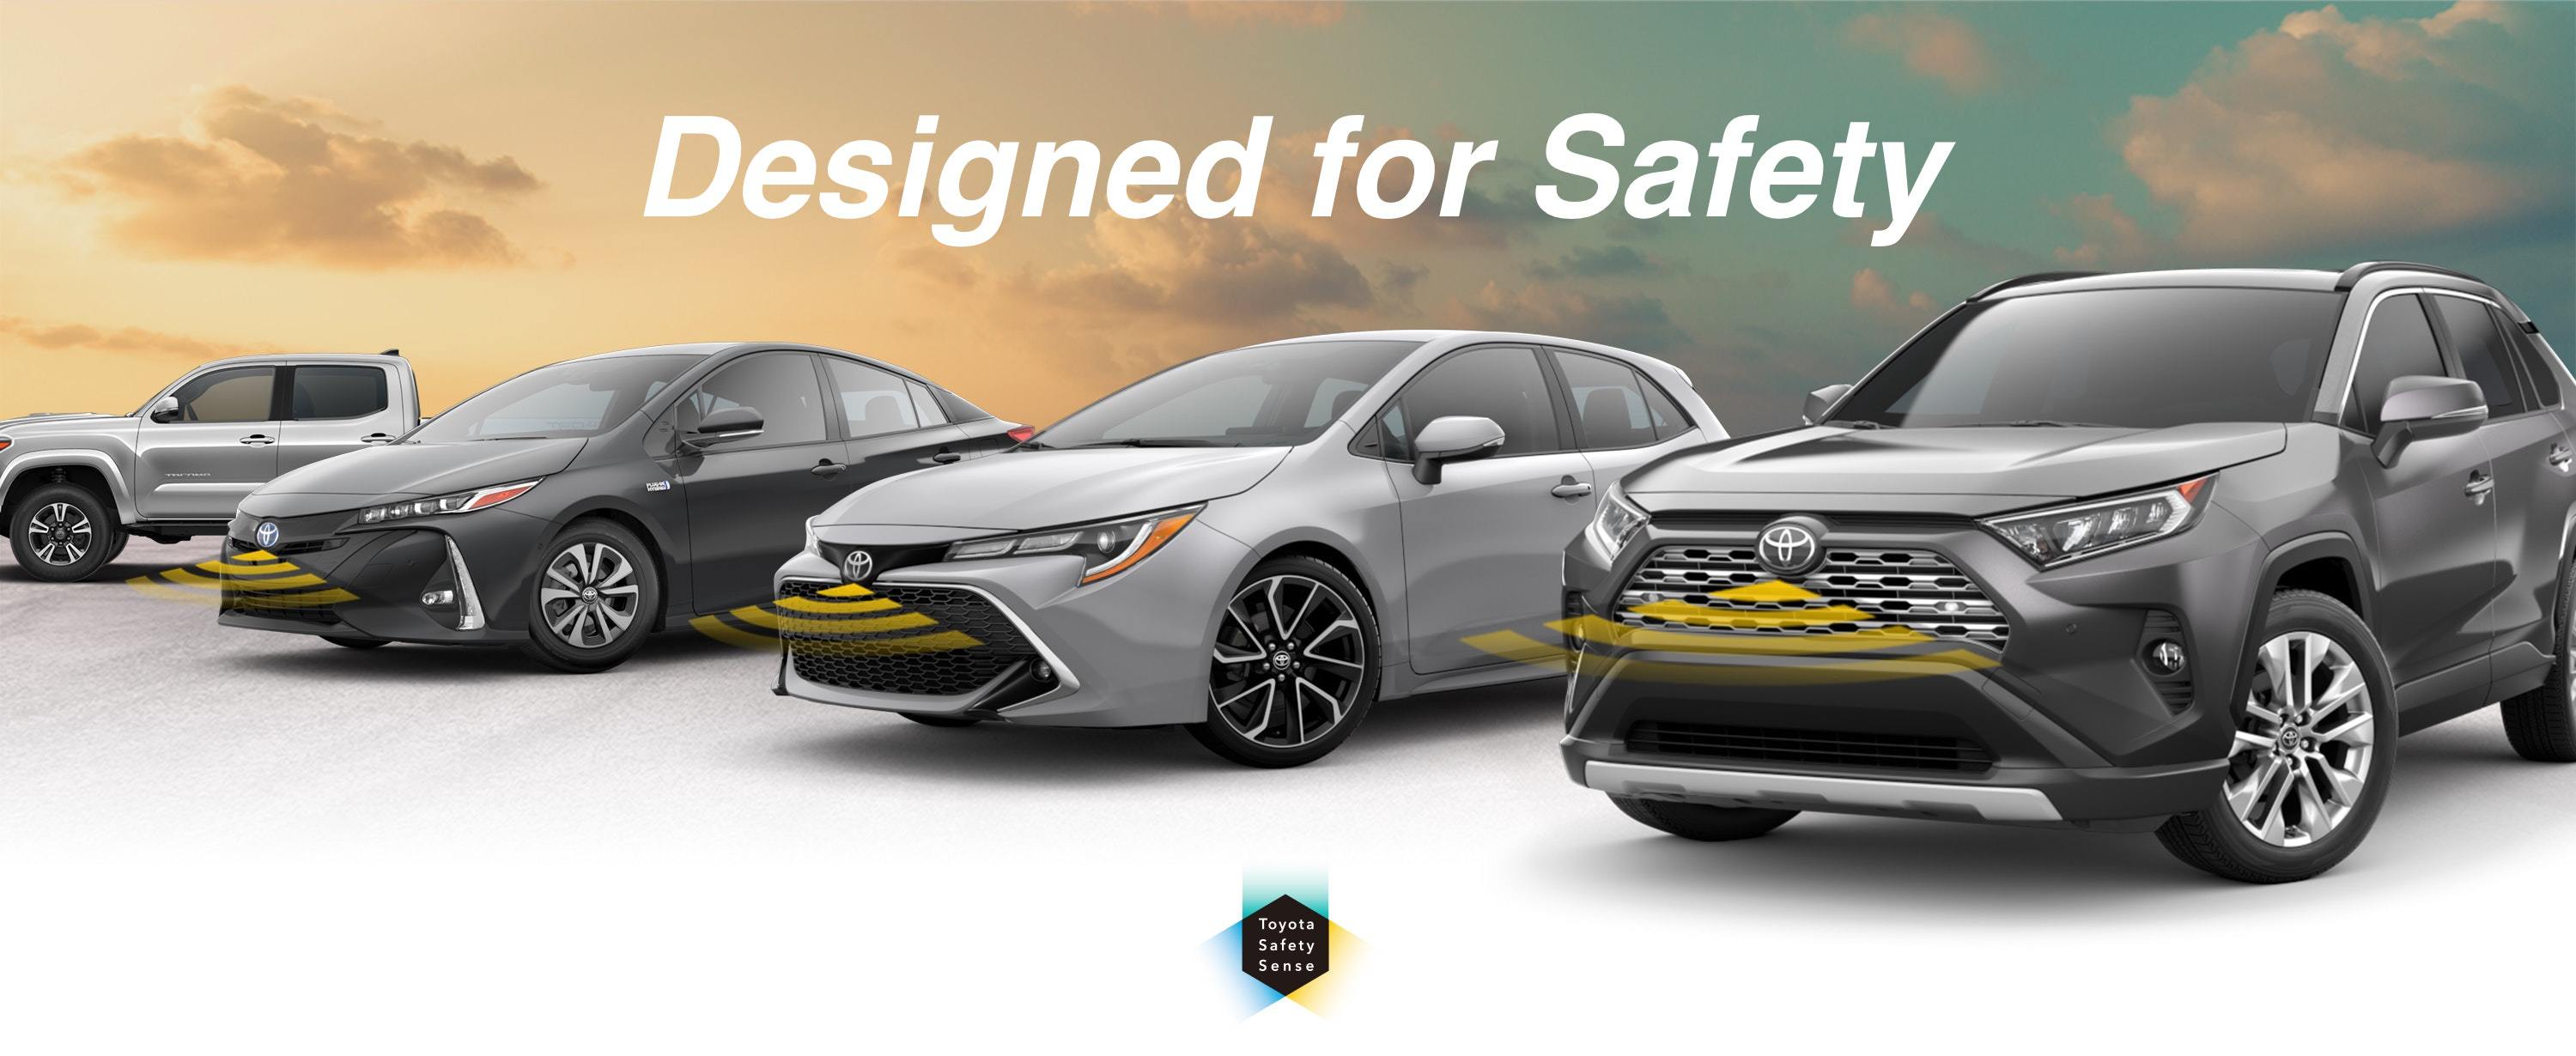 Learn More About Toyota Safety Sense